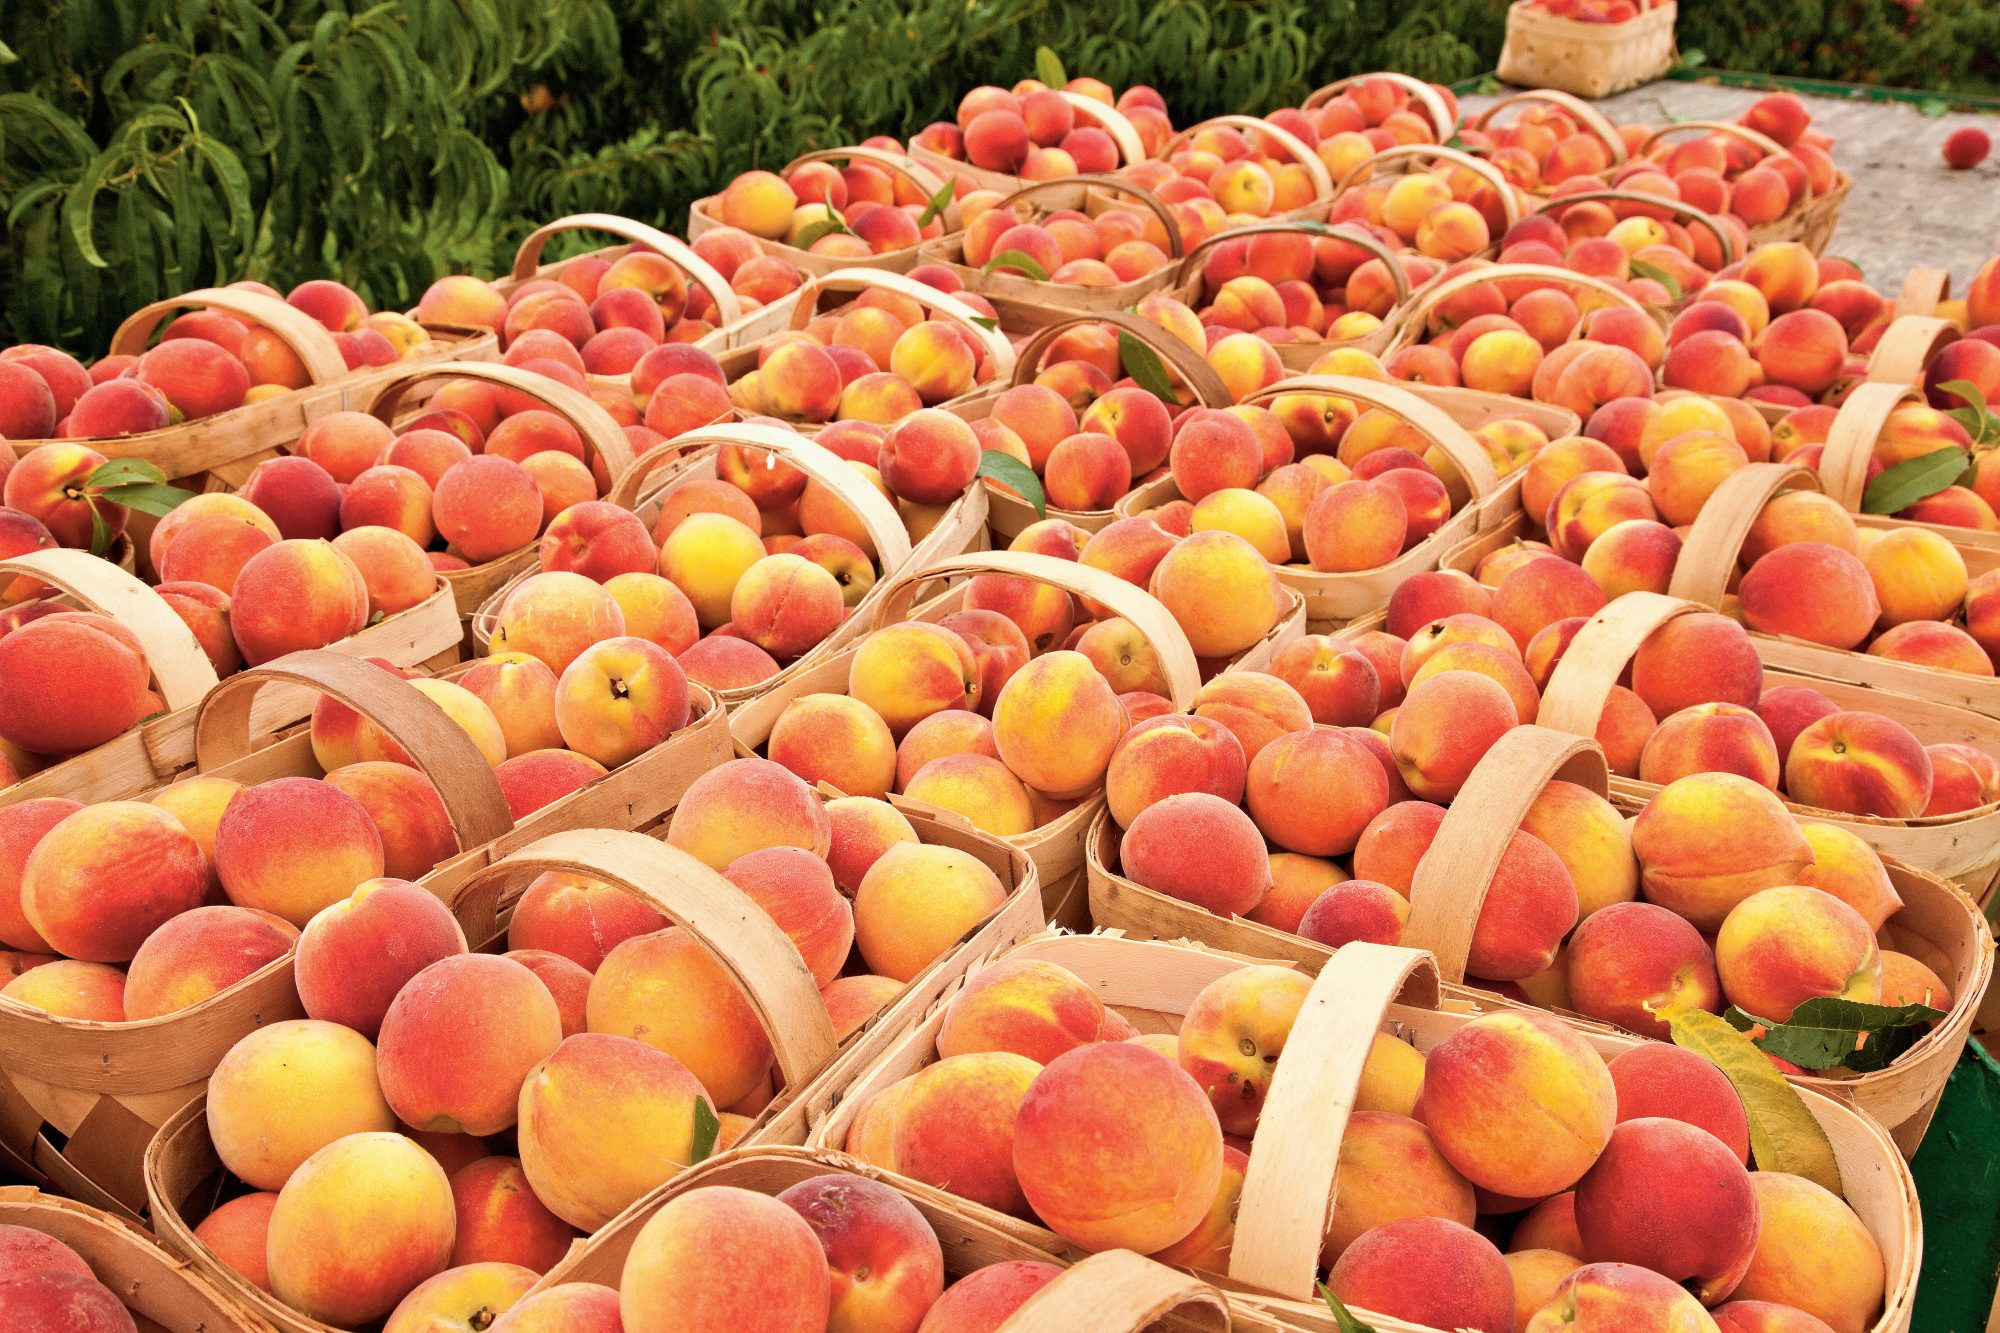 This Is The Very Best Way To Freeze Peaches Southern Living,Wheat Pennies Value Chart